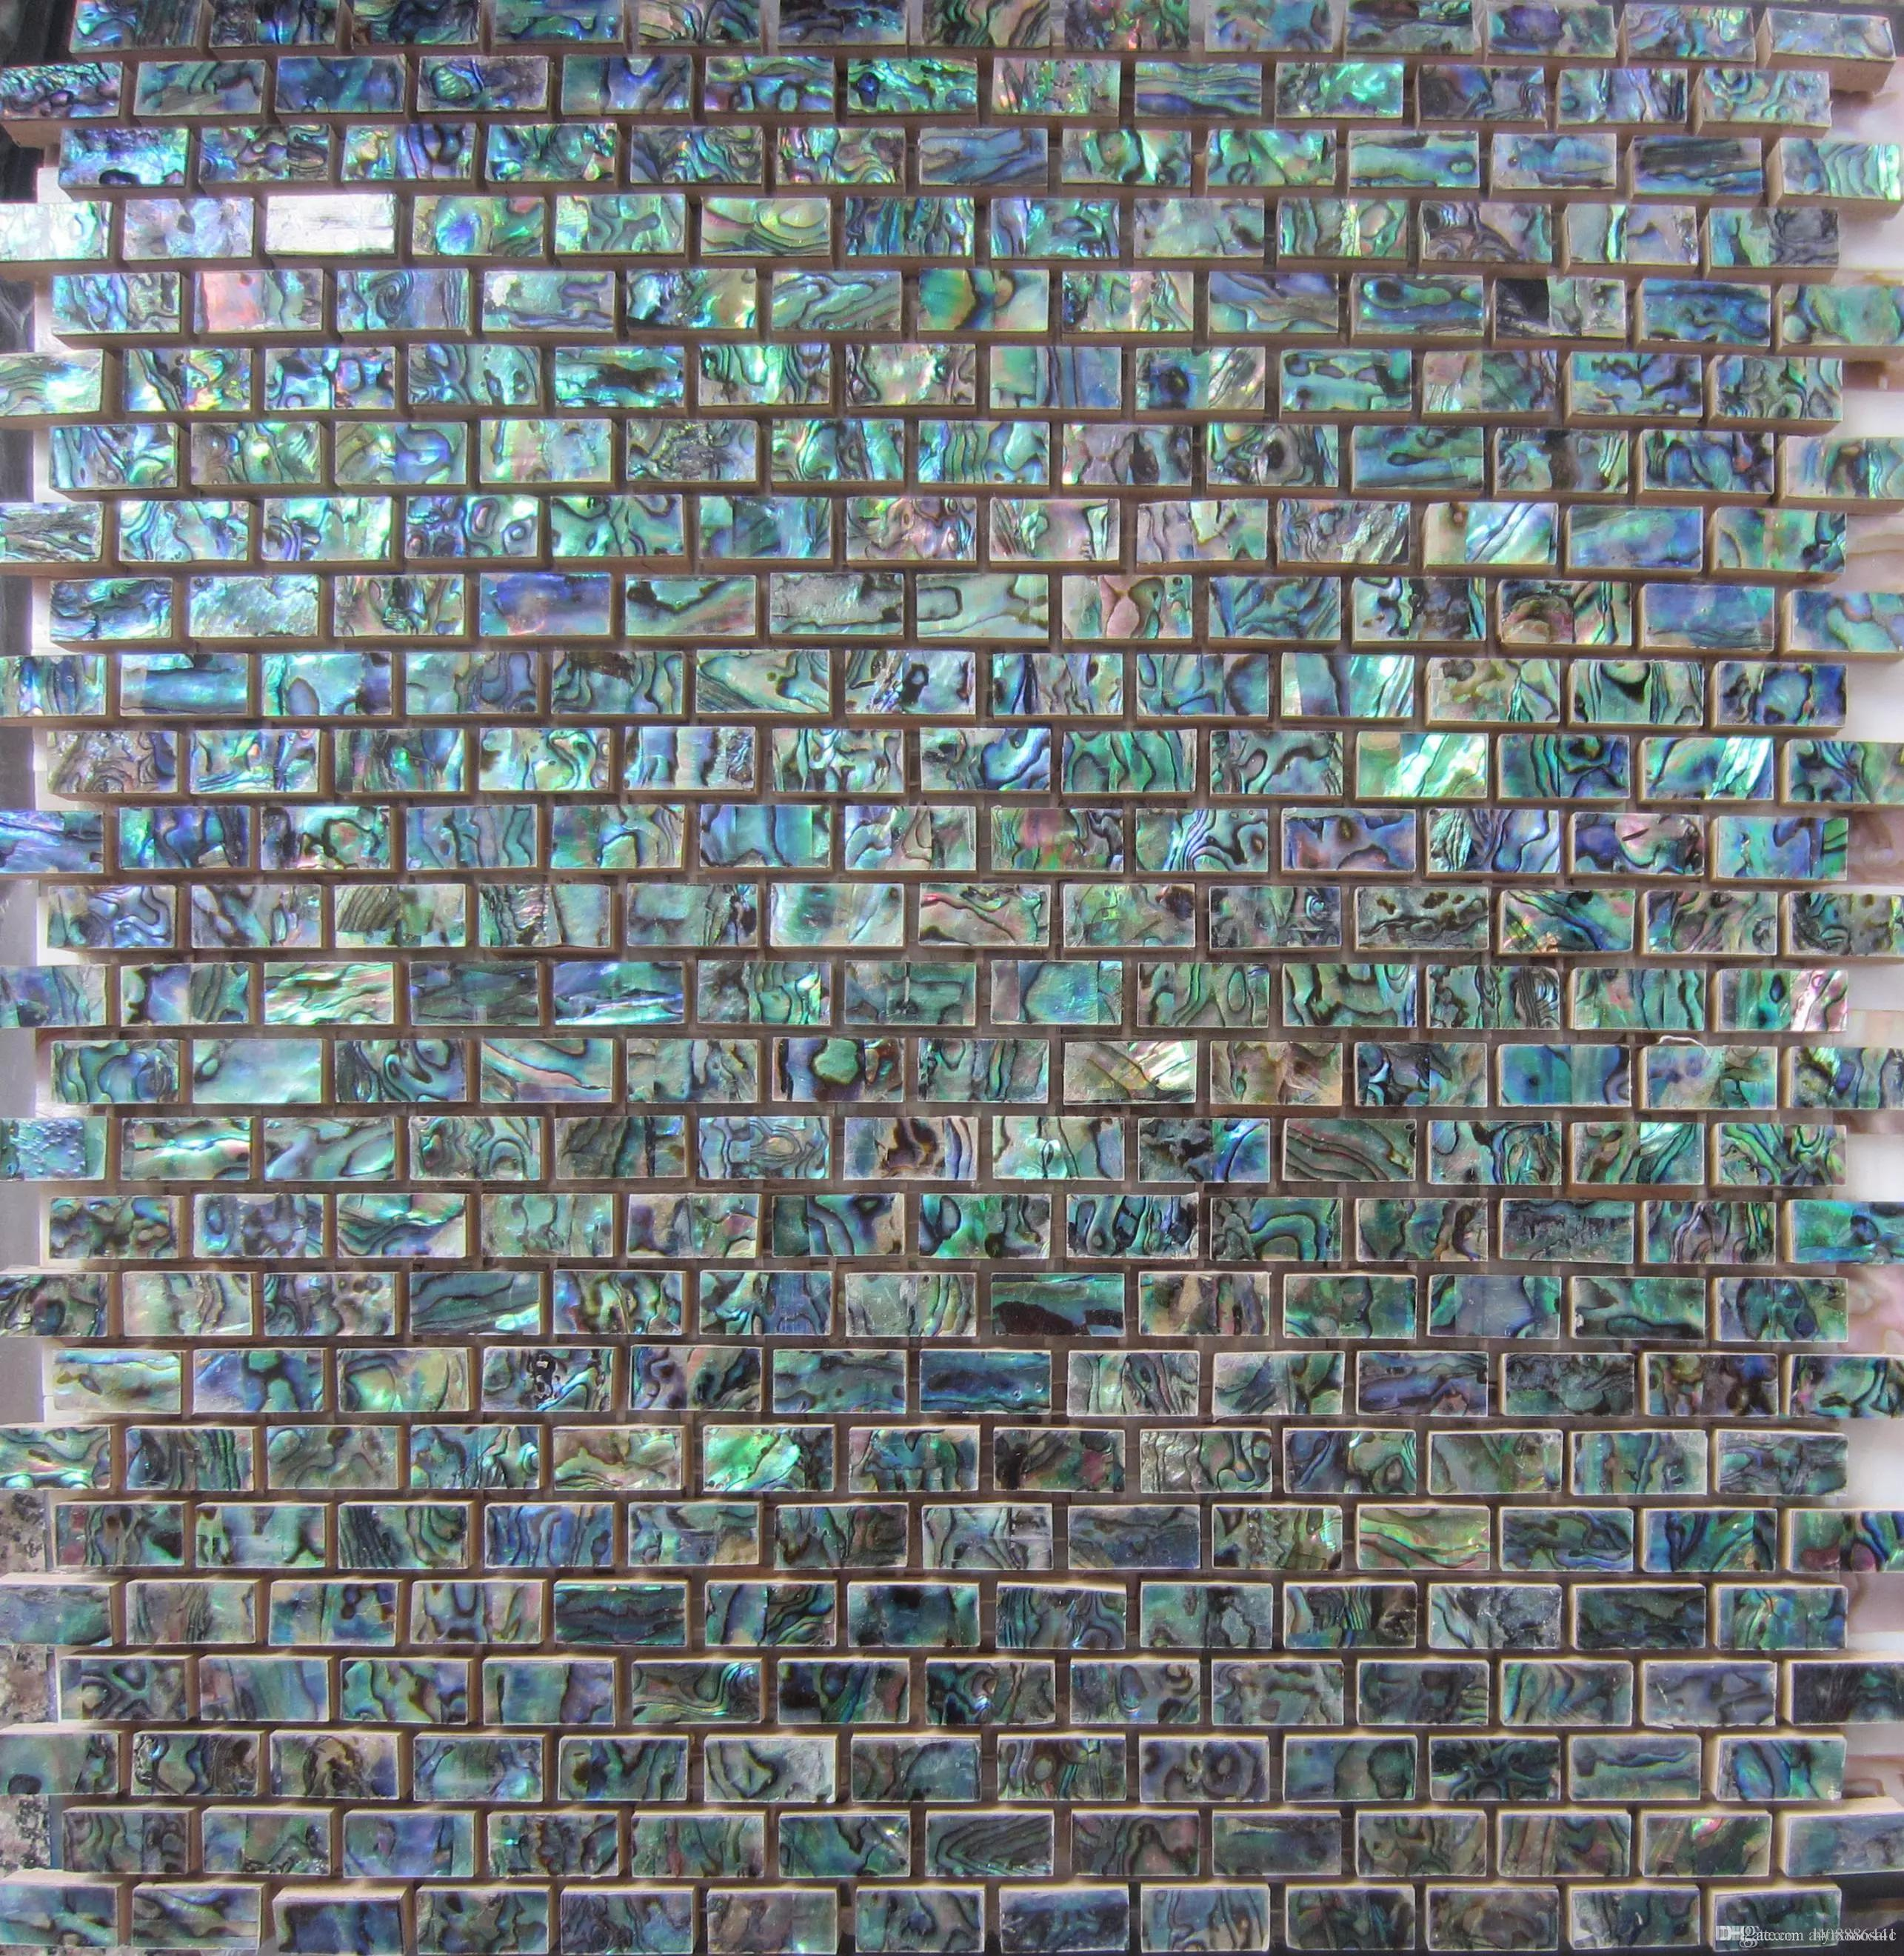 Green abalone shell mosaic tile on mesh with ceramic tile base green abalone shell mosaic tile on mesh with ceramic tile basebacksplash tilesbathroomtv backgroud wallmosaic tiles green green abalone mosaic ceramic ppazfo